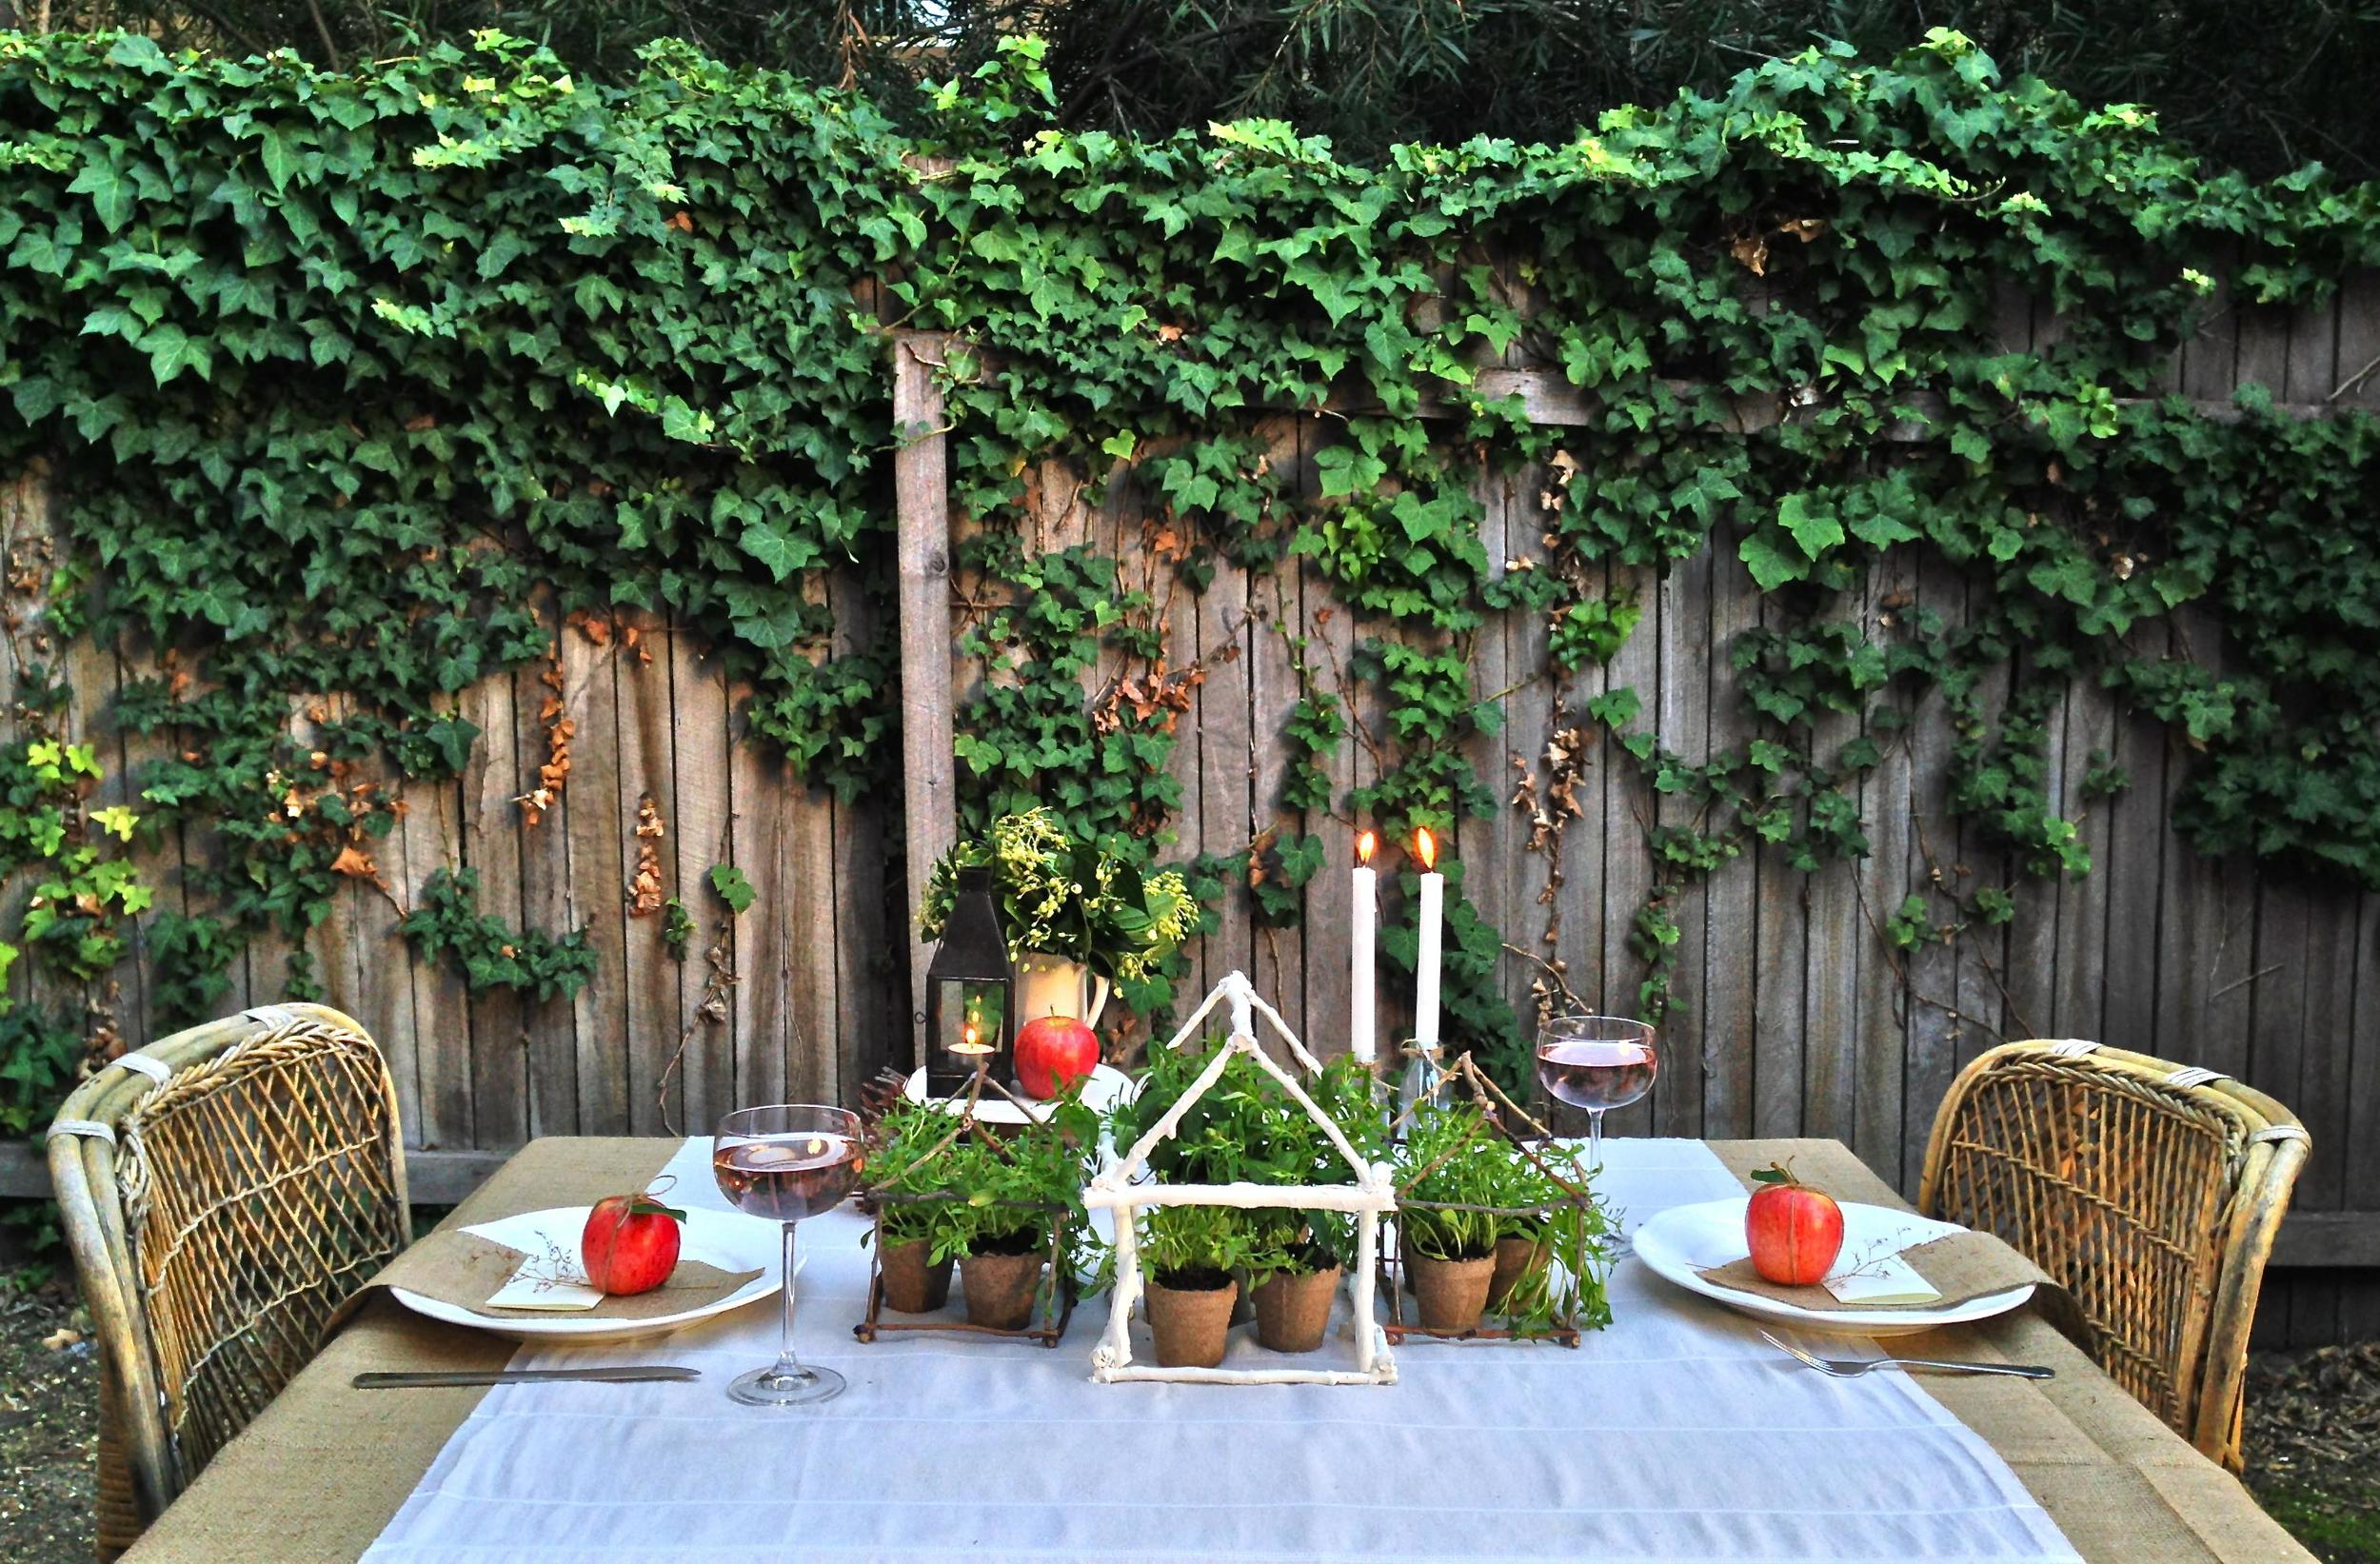 Outdoor Garden Dinner Party via Delighted Magazine